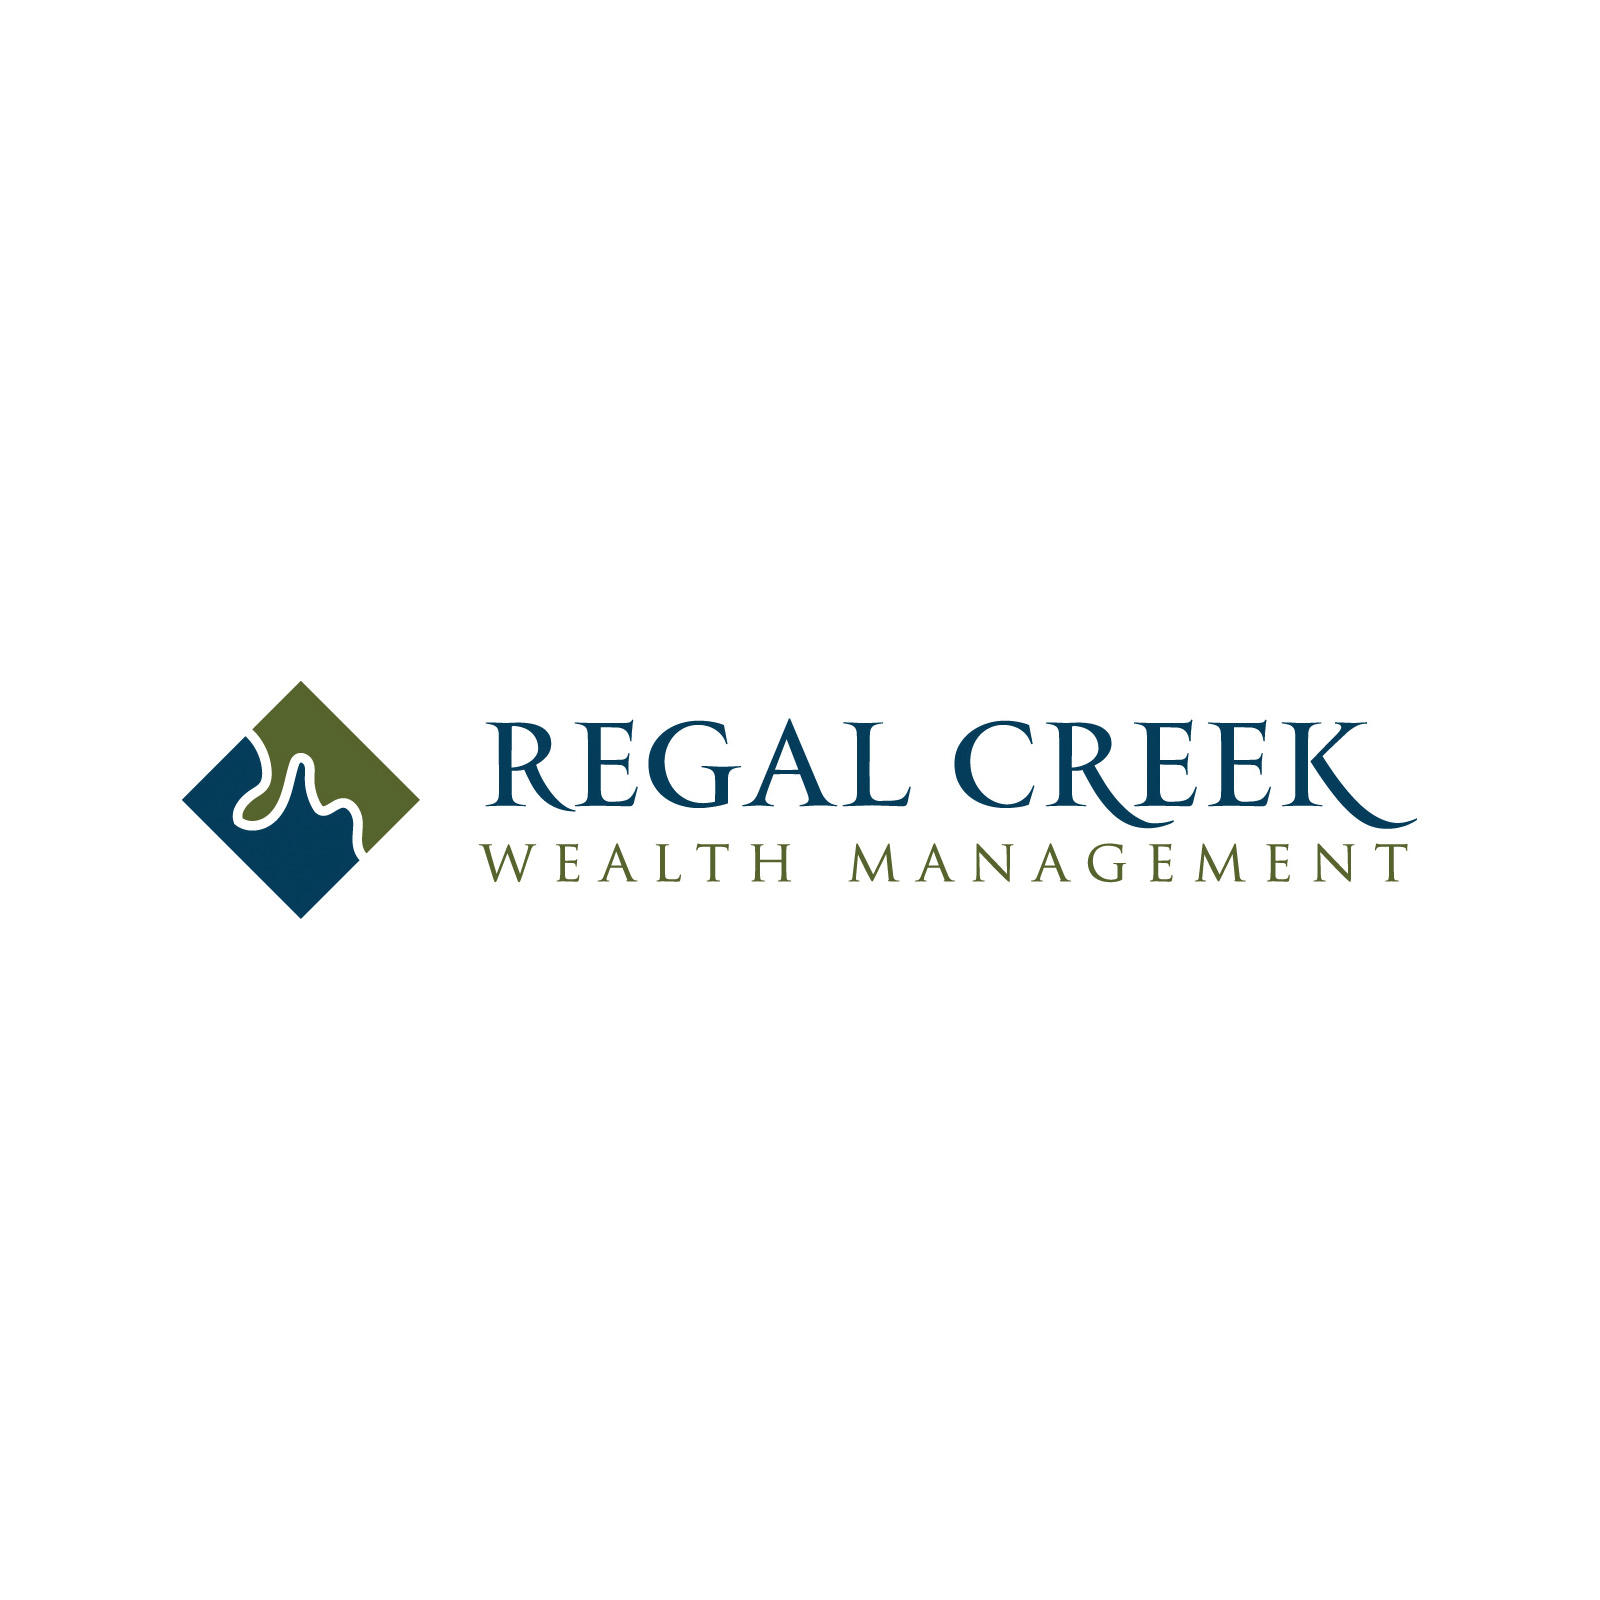 Regal Creek Wealth Management